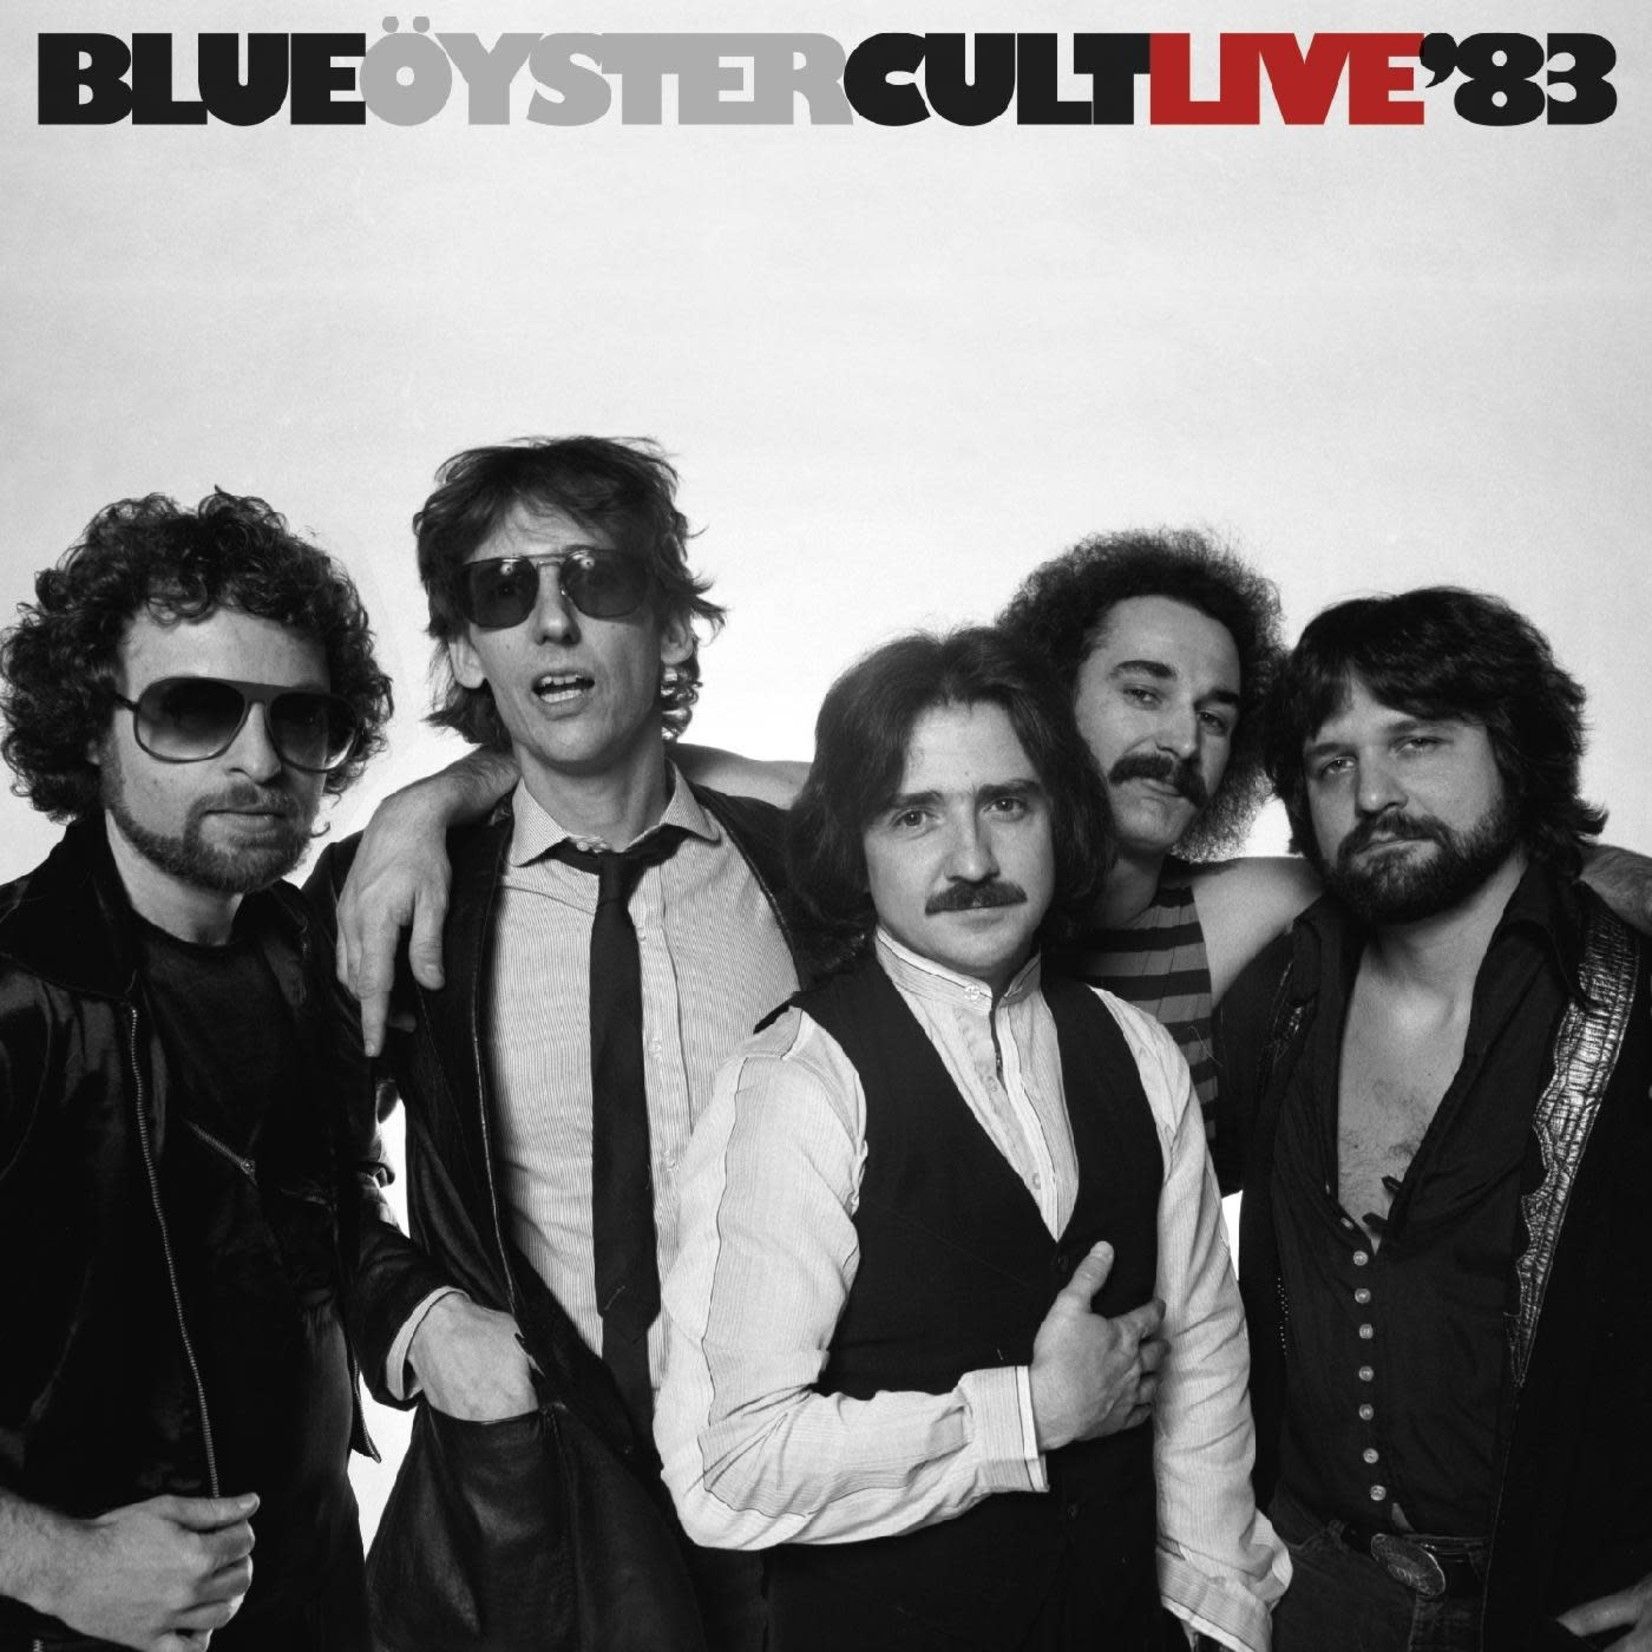 BLUE OYSTER CULT BF 2020 - LIVE '83 (LIMITED 2-LP BLUE WITH BLACK SWIRL VINYL EDITION)